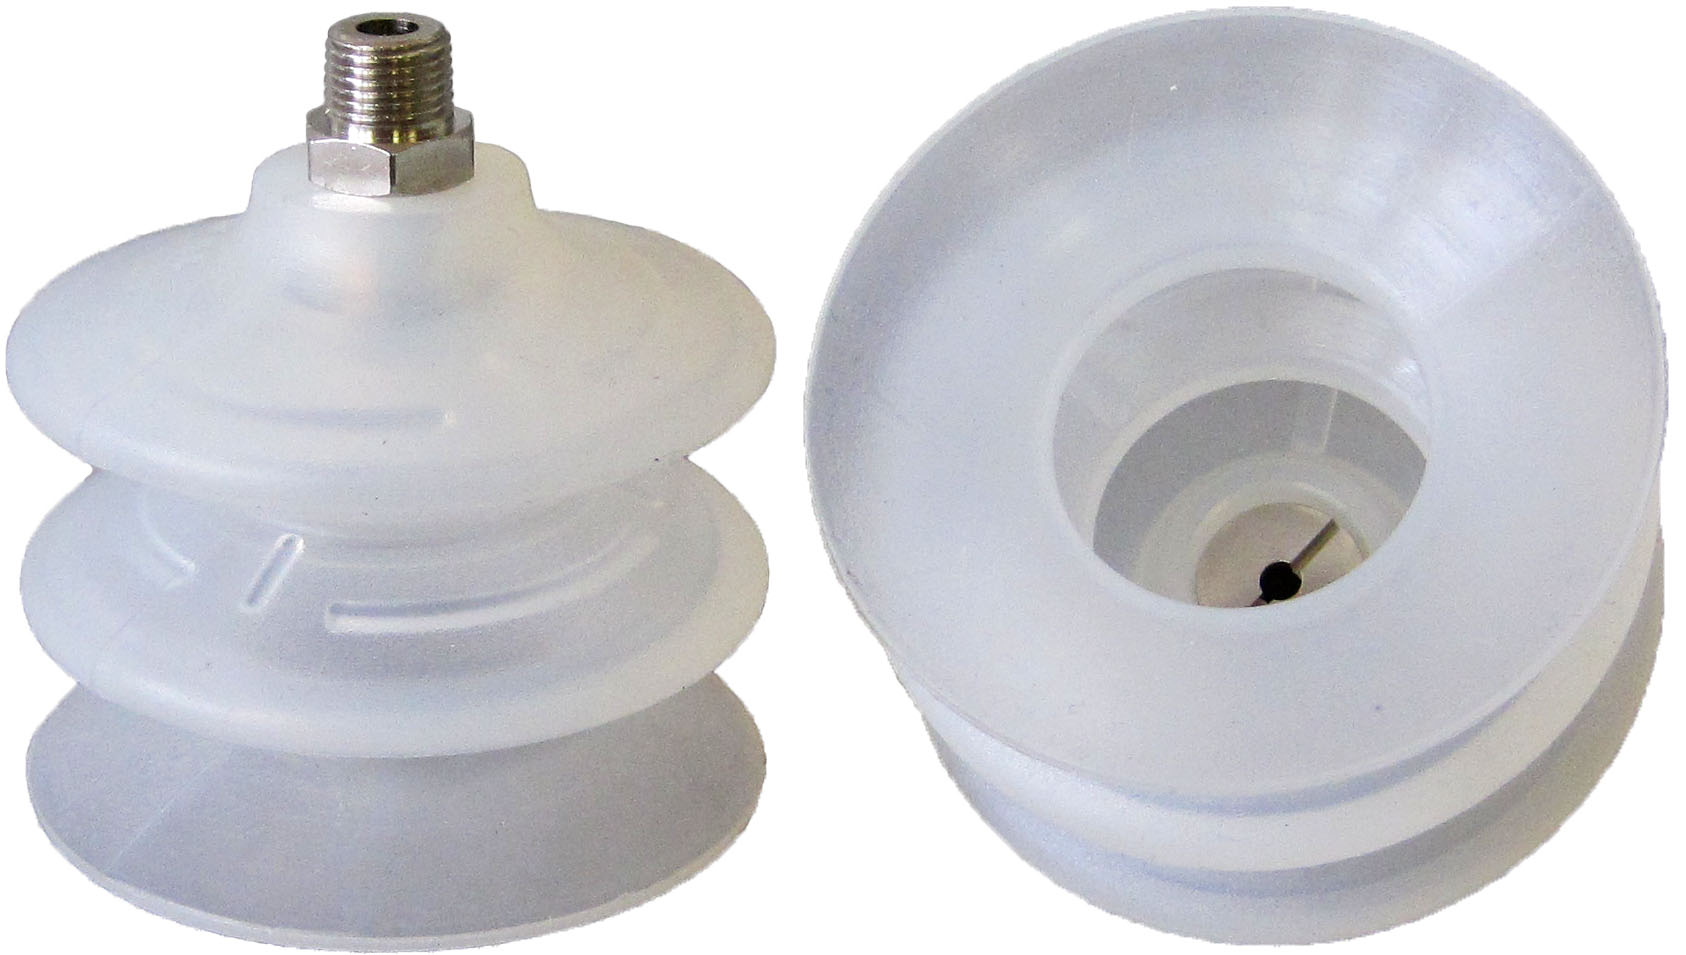 B2 5 Series Multiple Bellows Suction Vacuum Cups